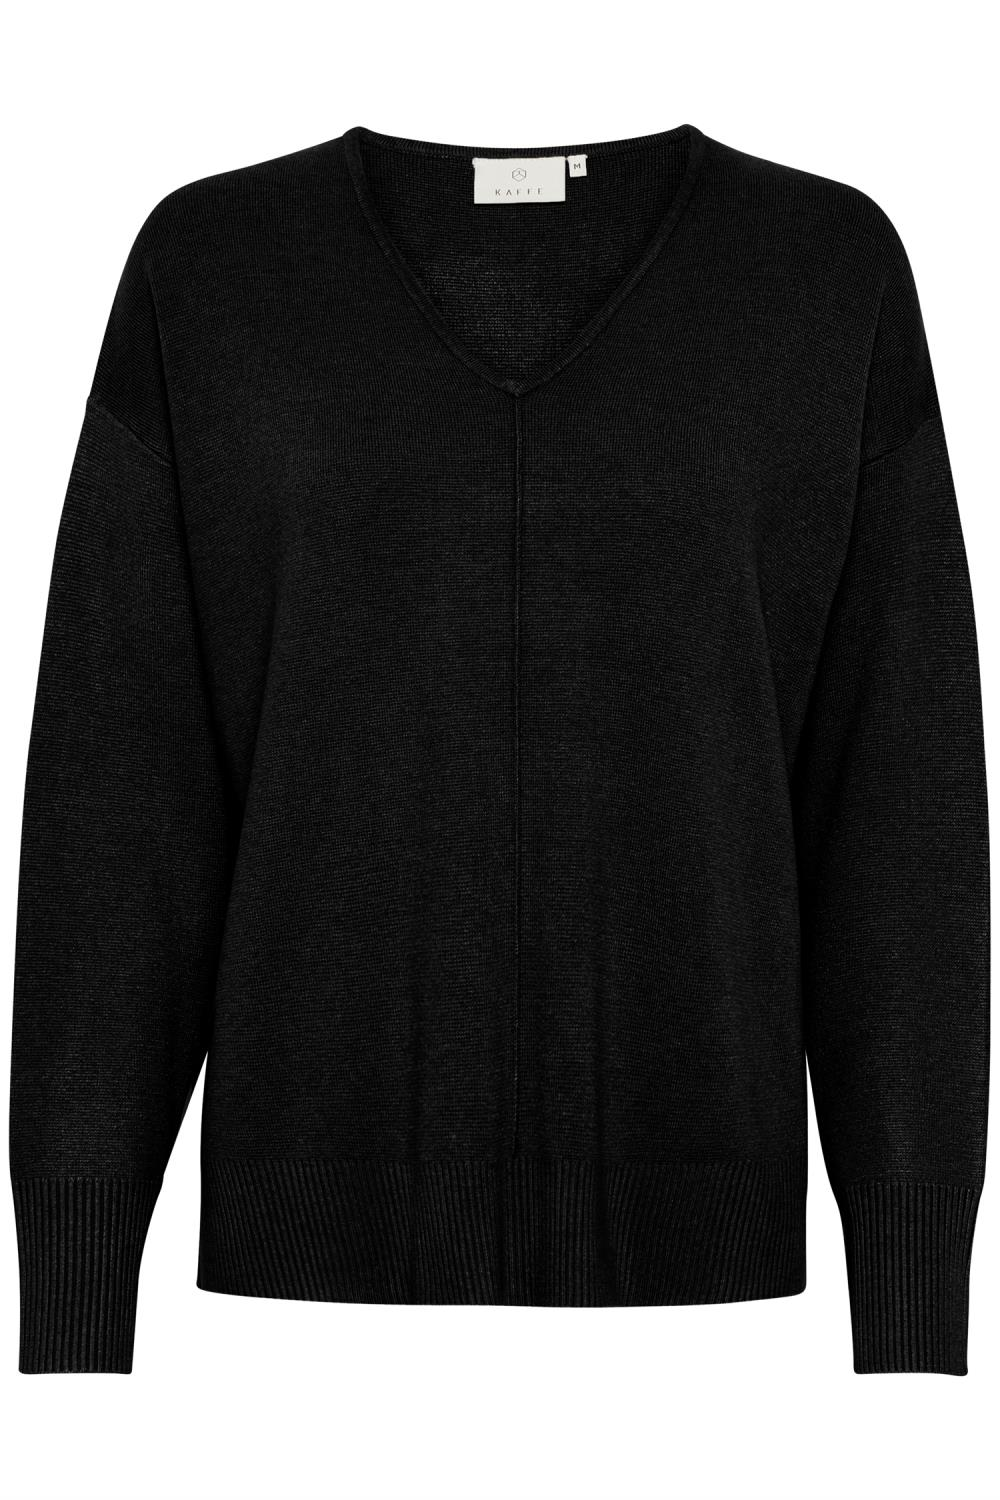 Kaffe KAmolly pullover, black deep